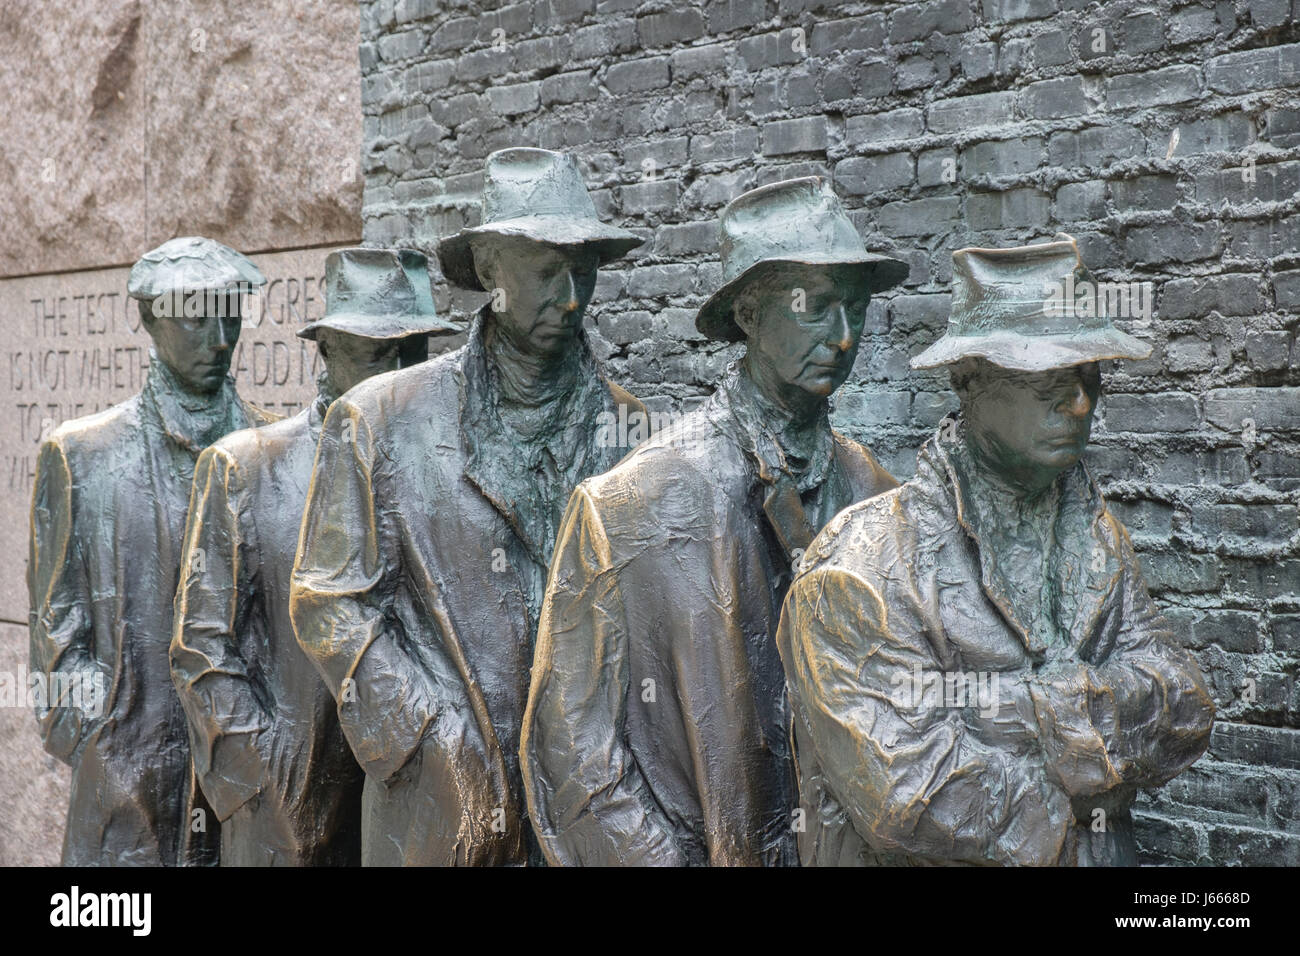 The Breadline, FDR Memorial, Washington, DC - Stock Image